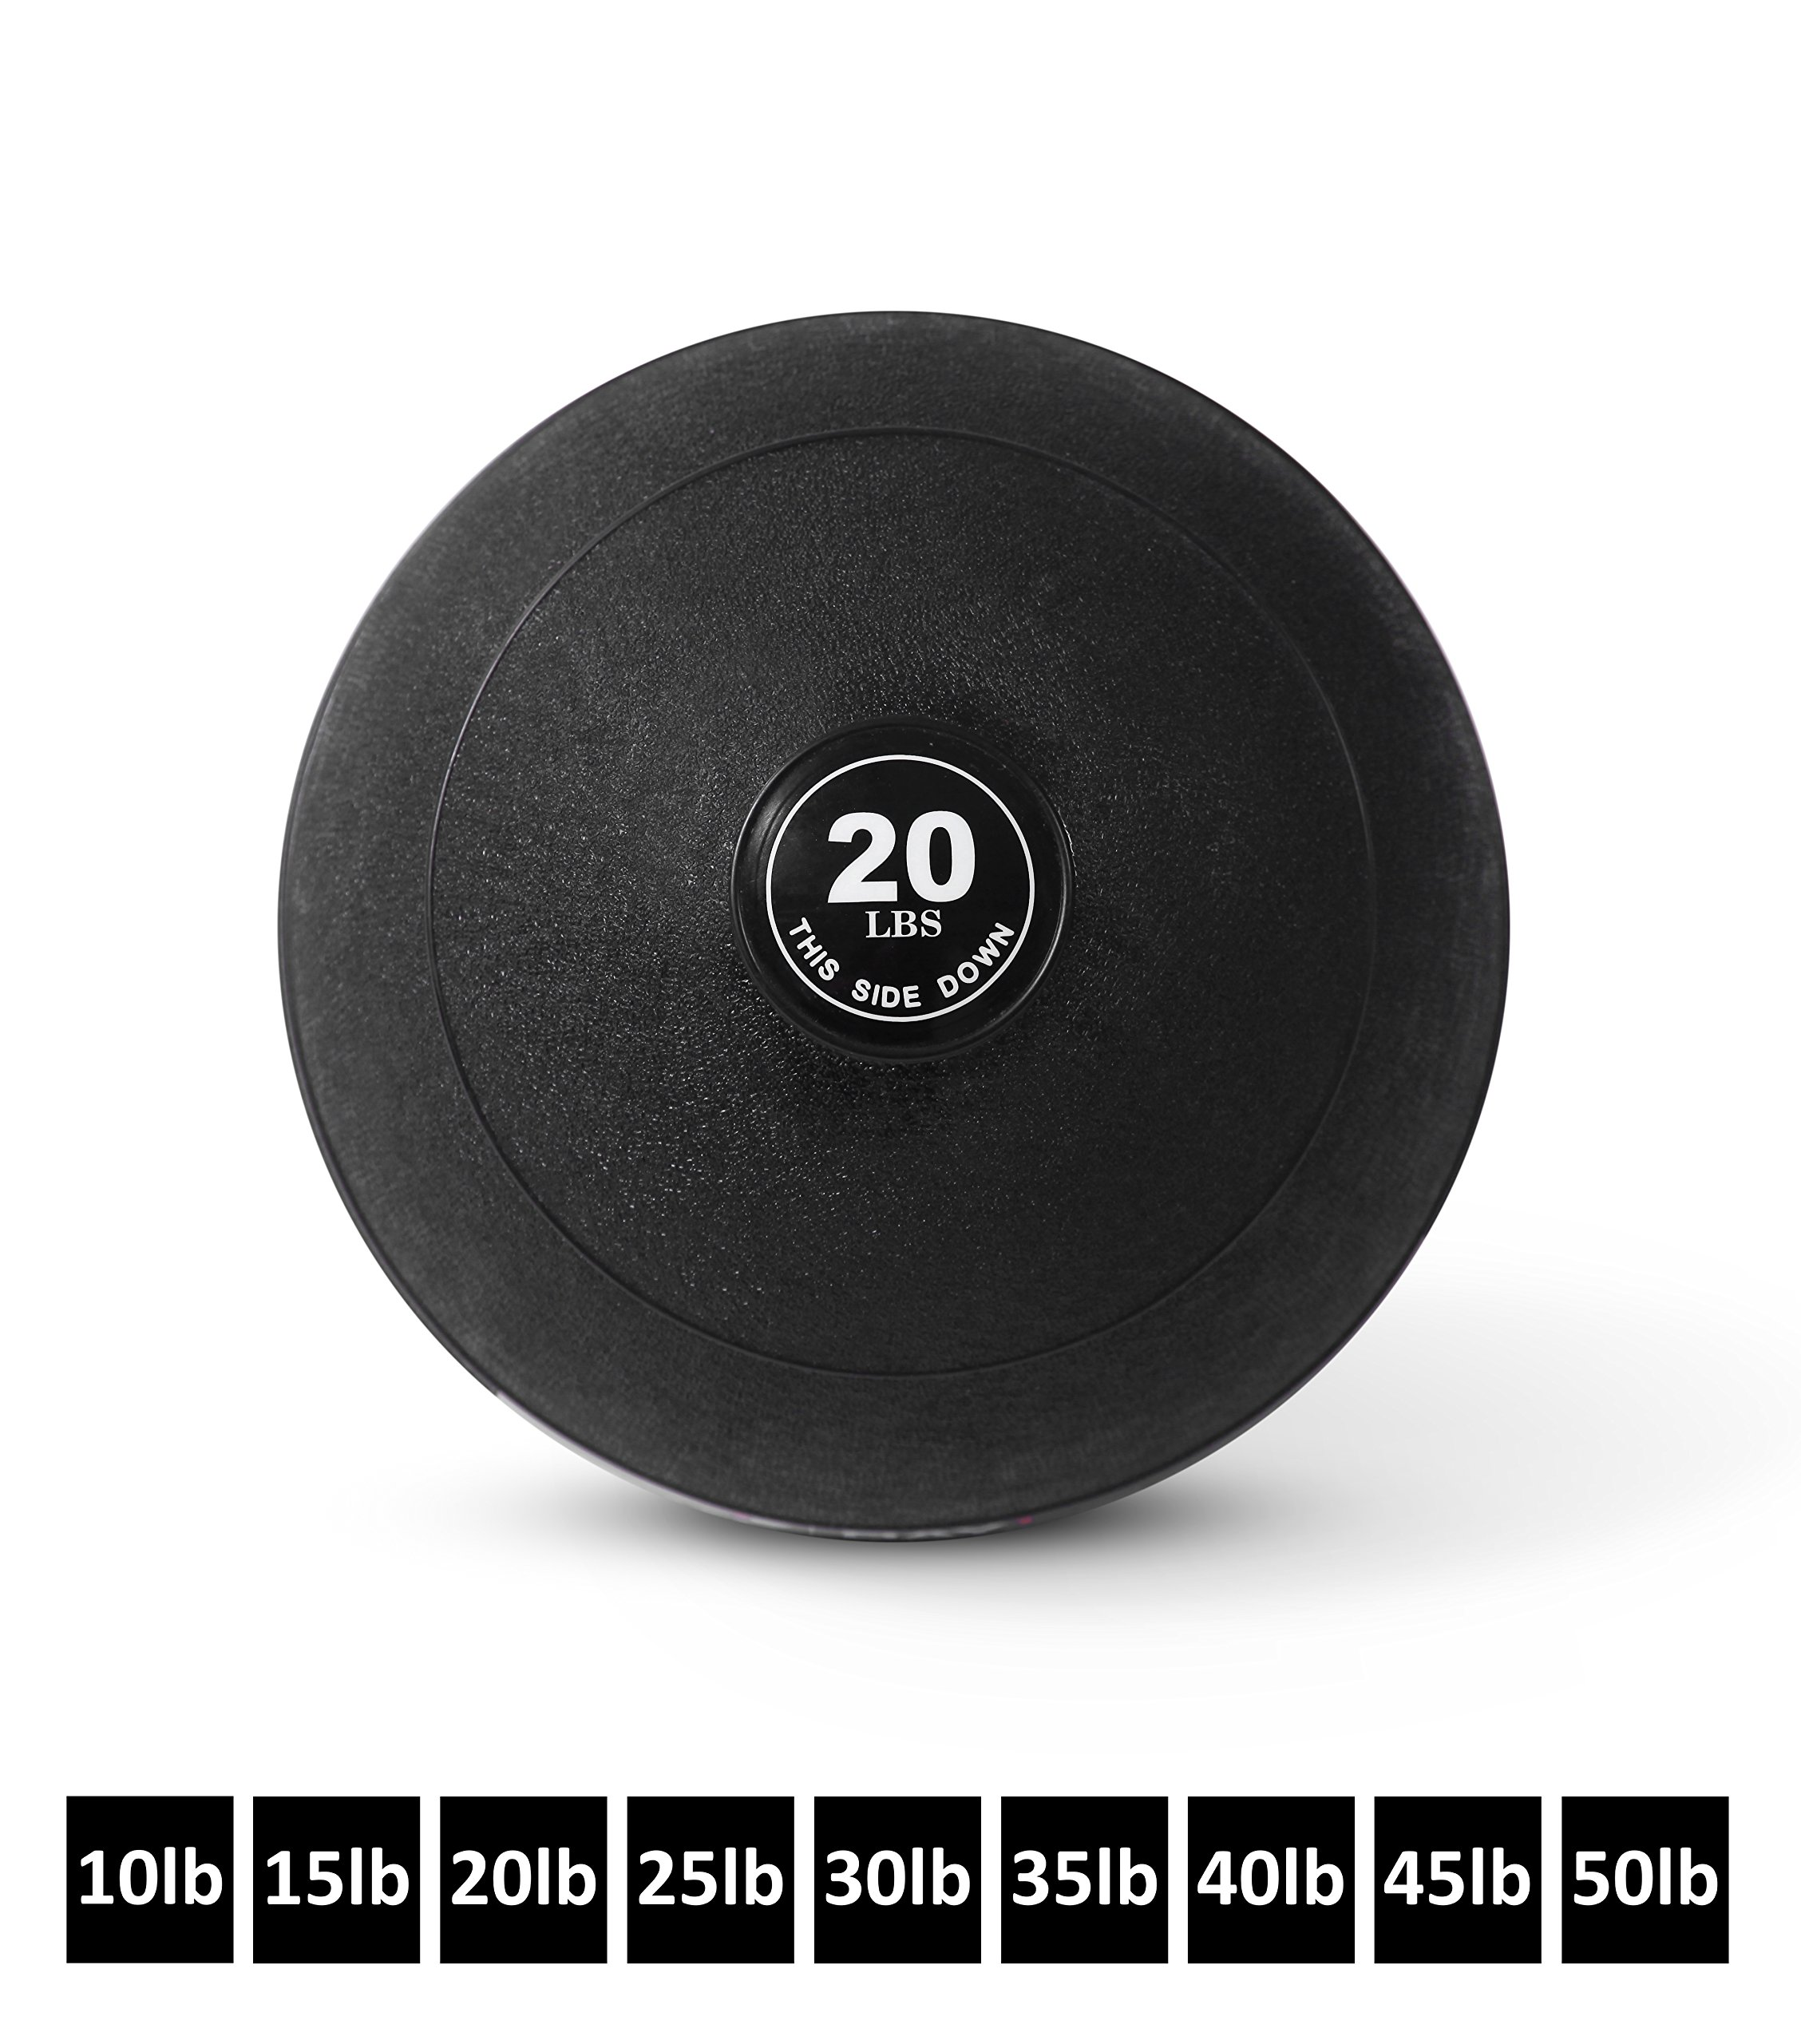 Day 1 Fitness Weighted Slam Ball, No Bounce Medicine Ball - Gym Equipment Accessories for High Intensity Exercise, Functional Strength Training, Cardio, Crossfit, and Plyometrics - 20 lbs